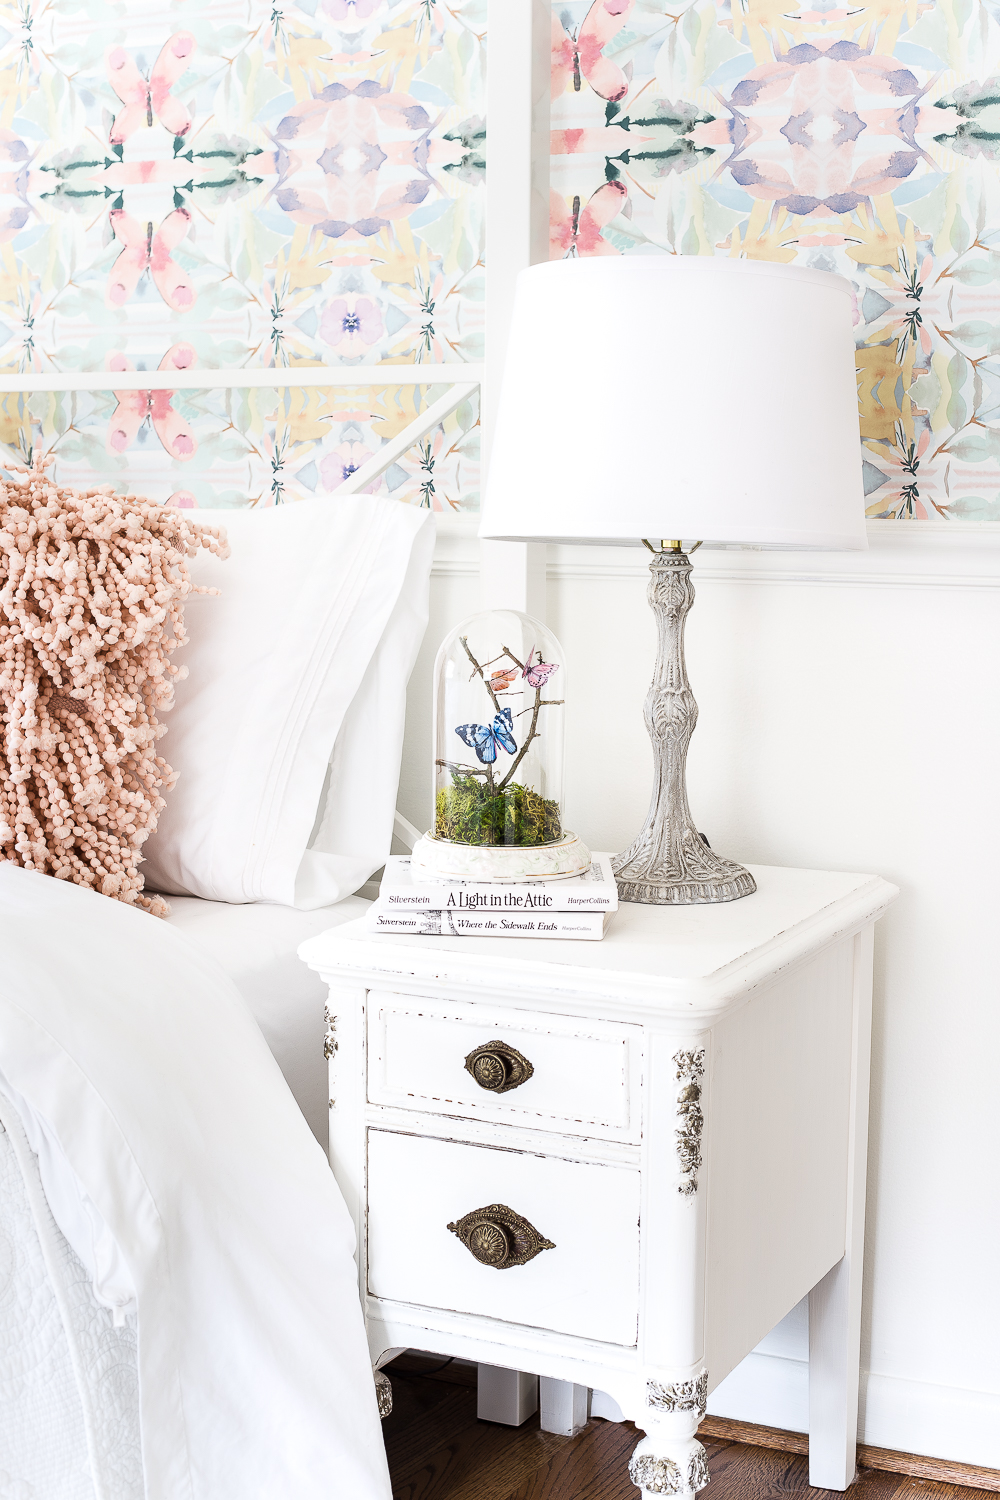 This bright floral wallpaper compliments the white vintage bedside table.